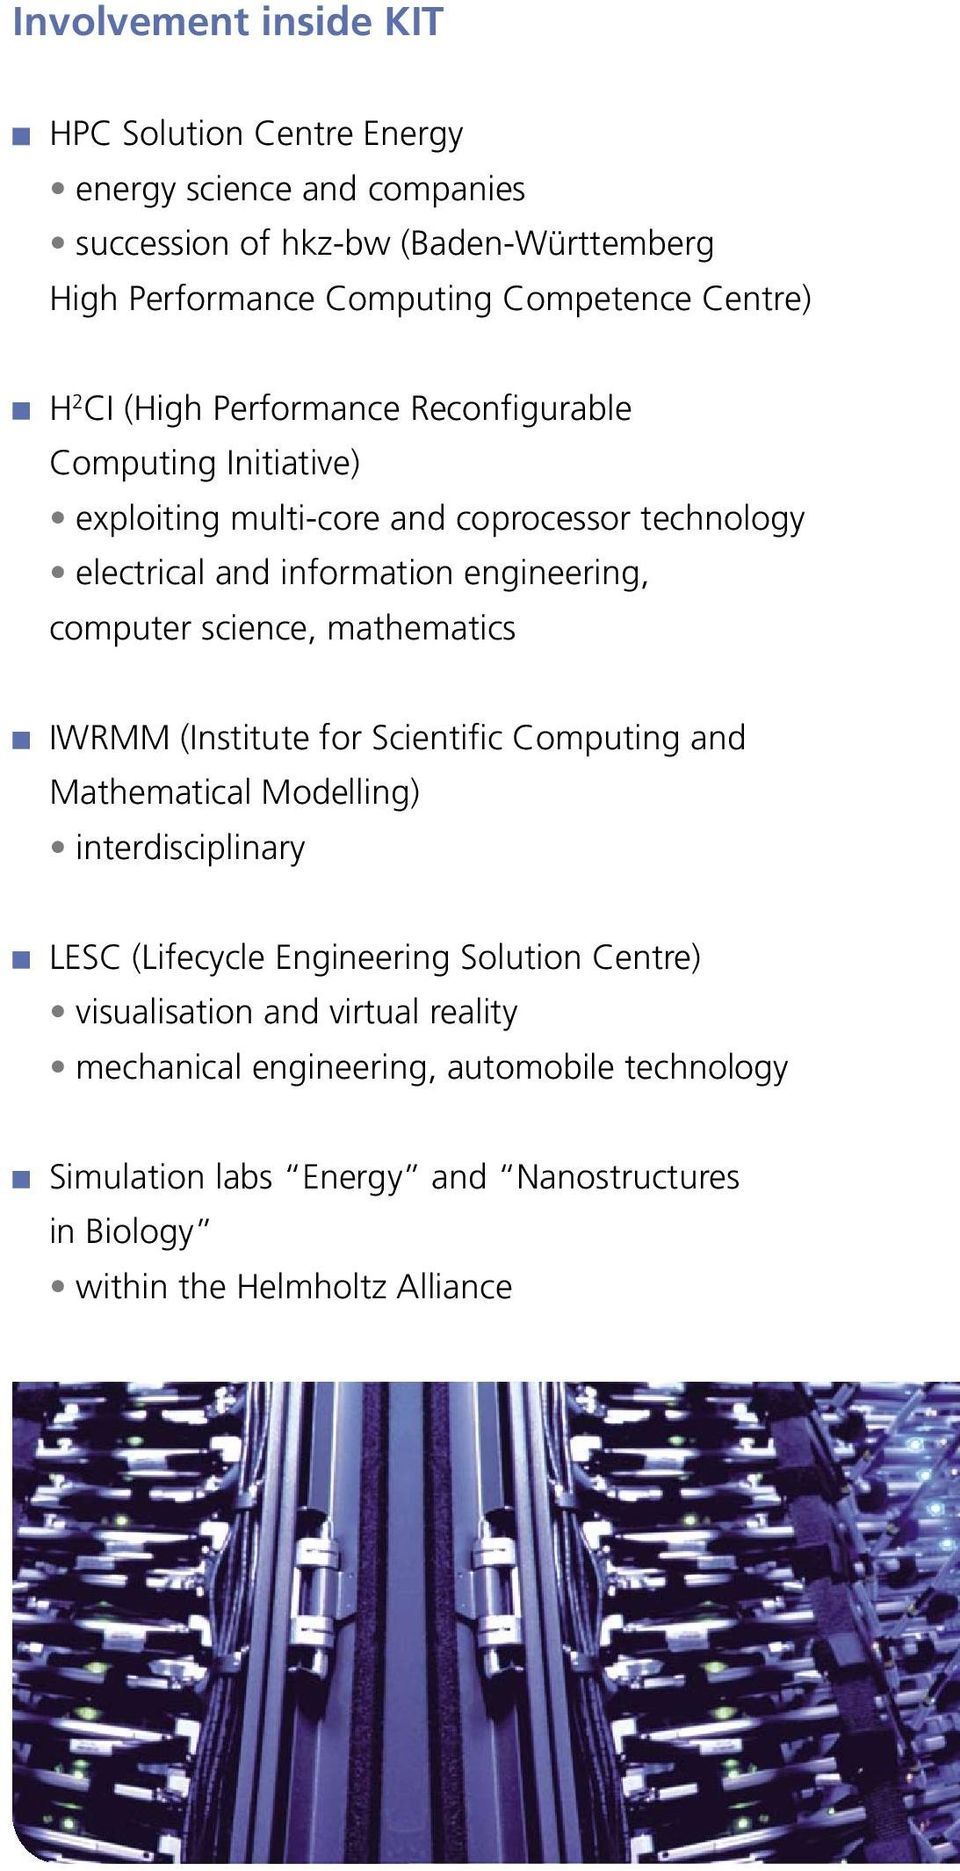 computer science, mathematics IWRMM (Institute for Scientific Computing and Mathematical Modelling) interdisciplinary LESC (Lifecycle Engineering Solution